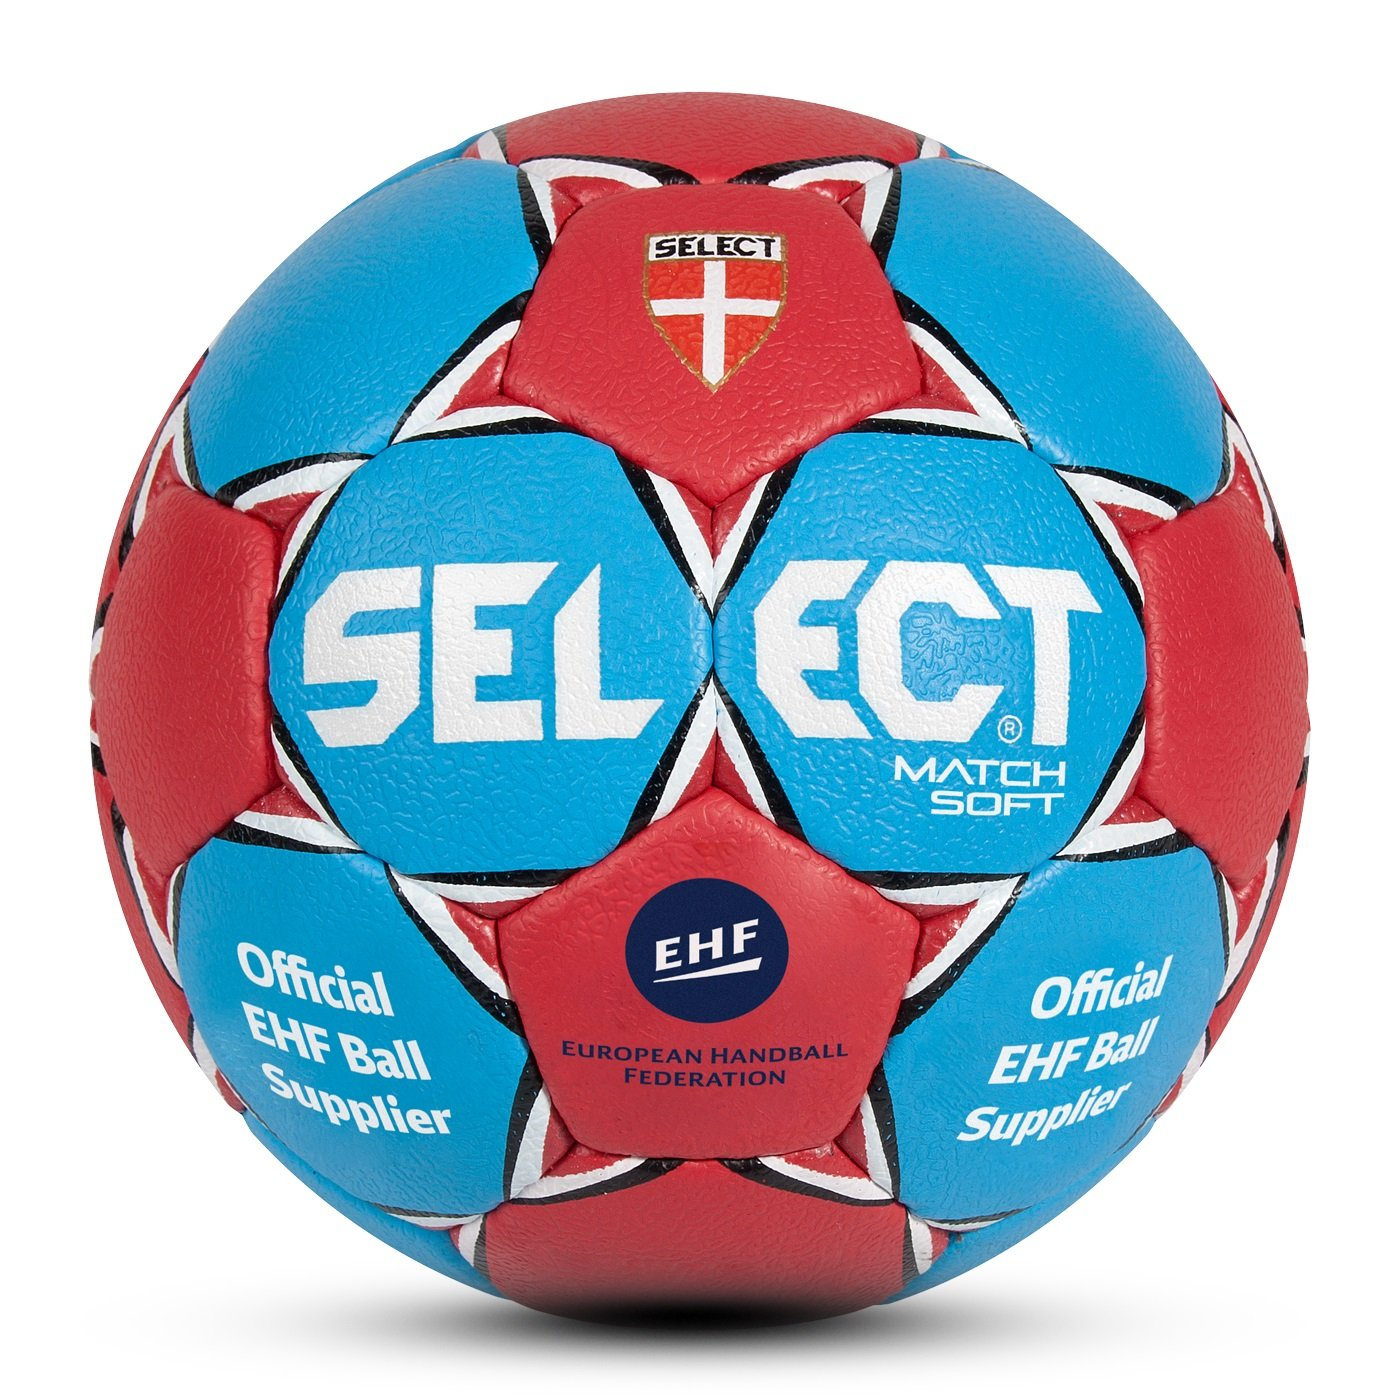 Select Ballon de Handball Match Soft 162